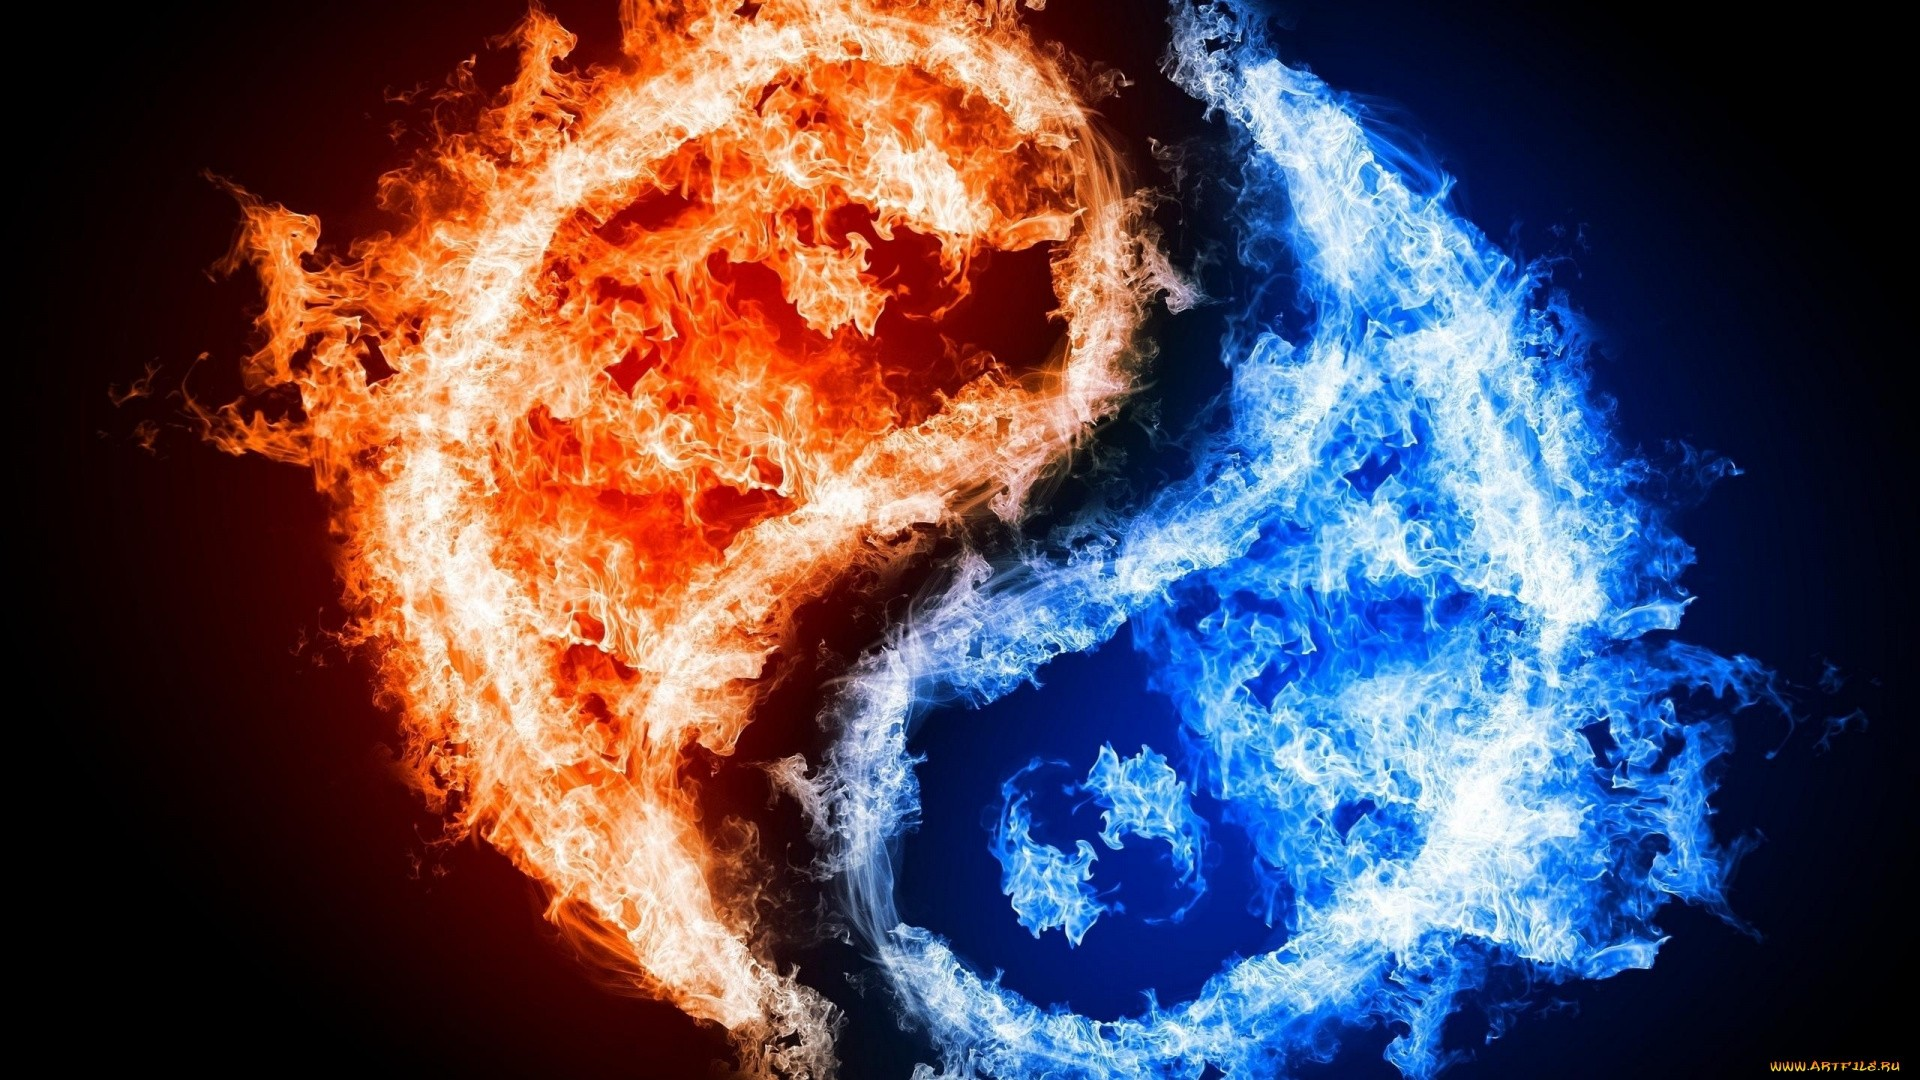 Fire And Ice Wallpaper